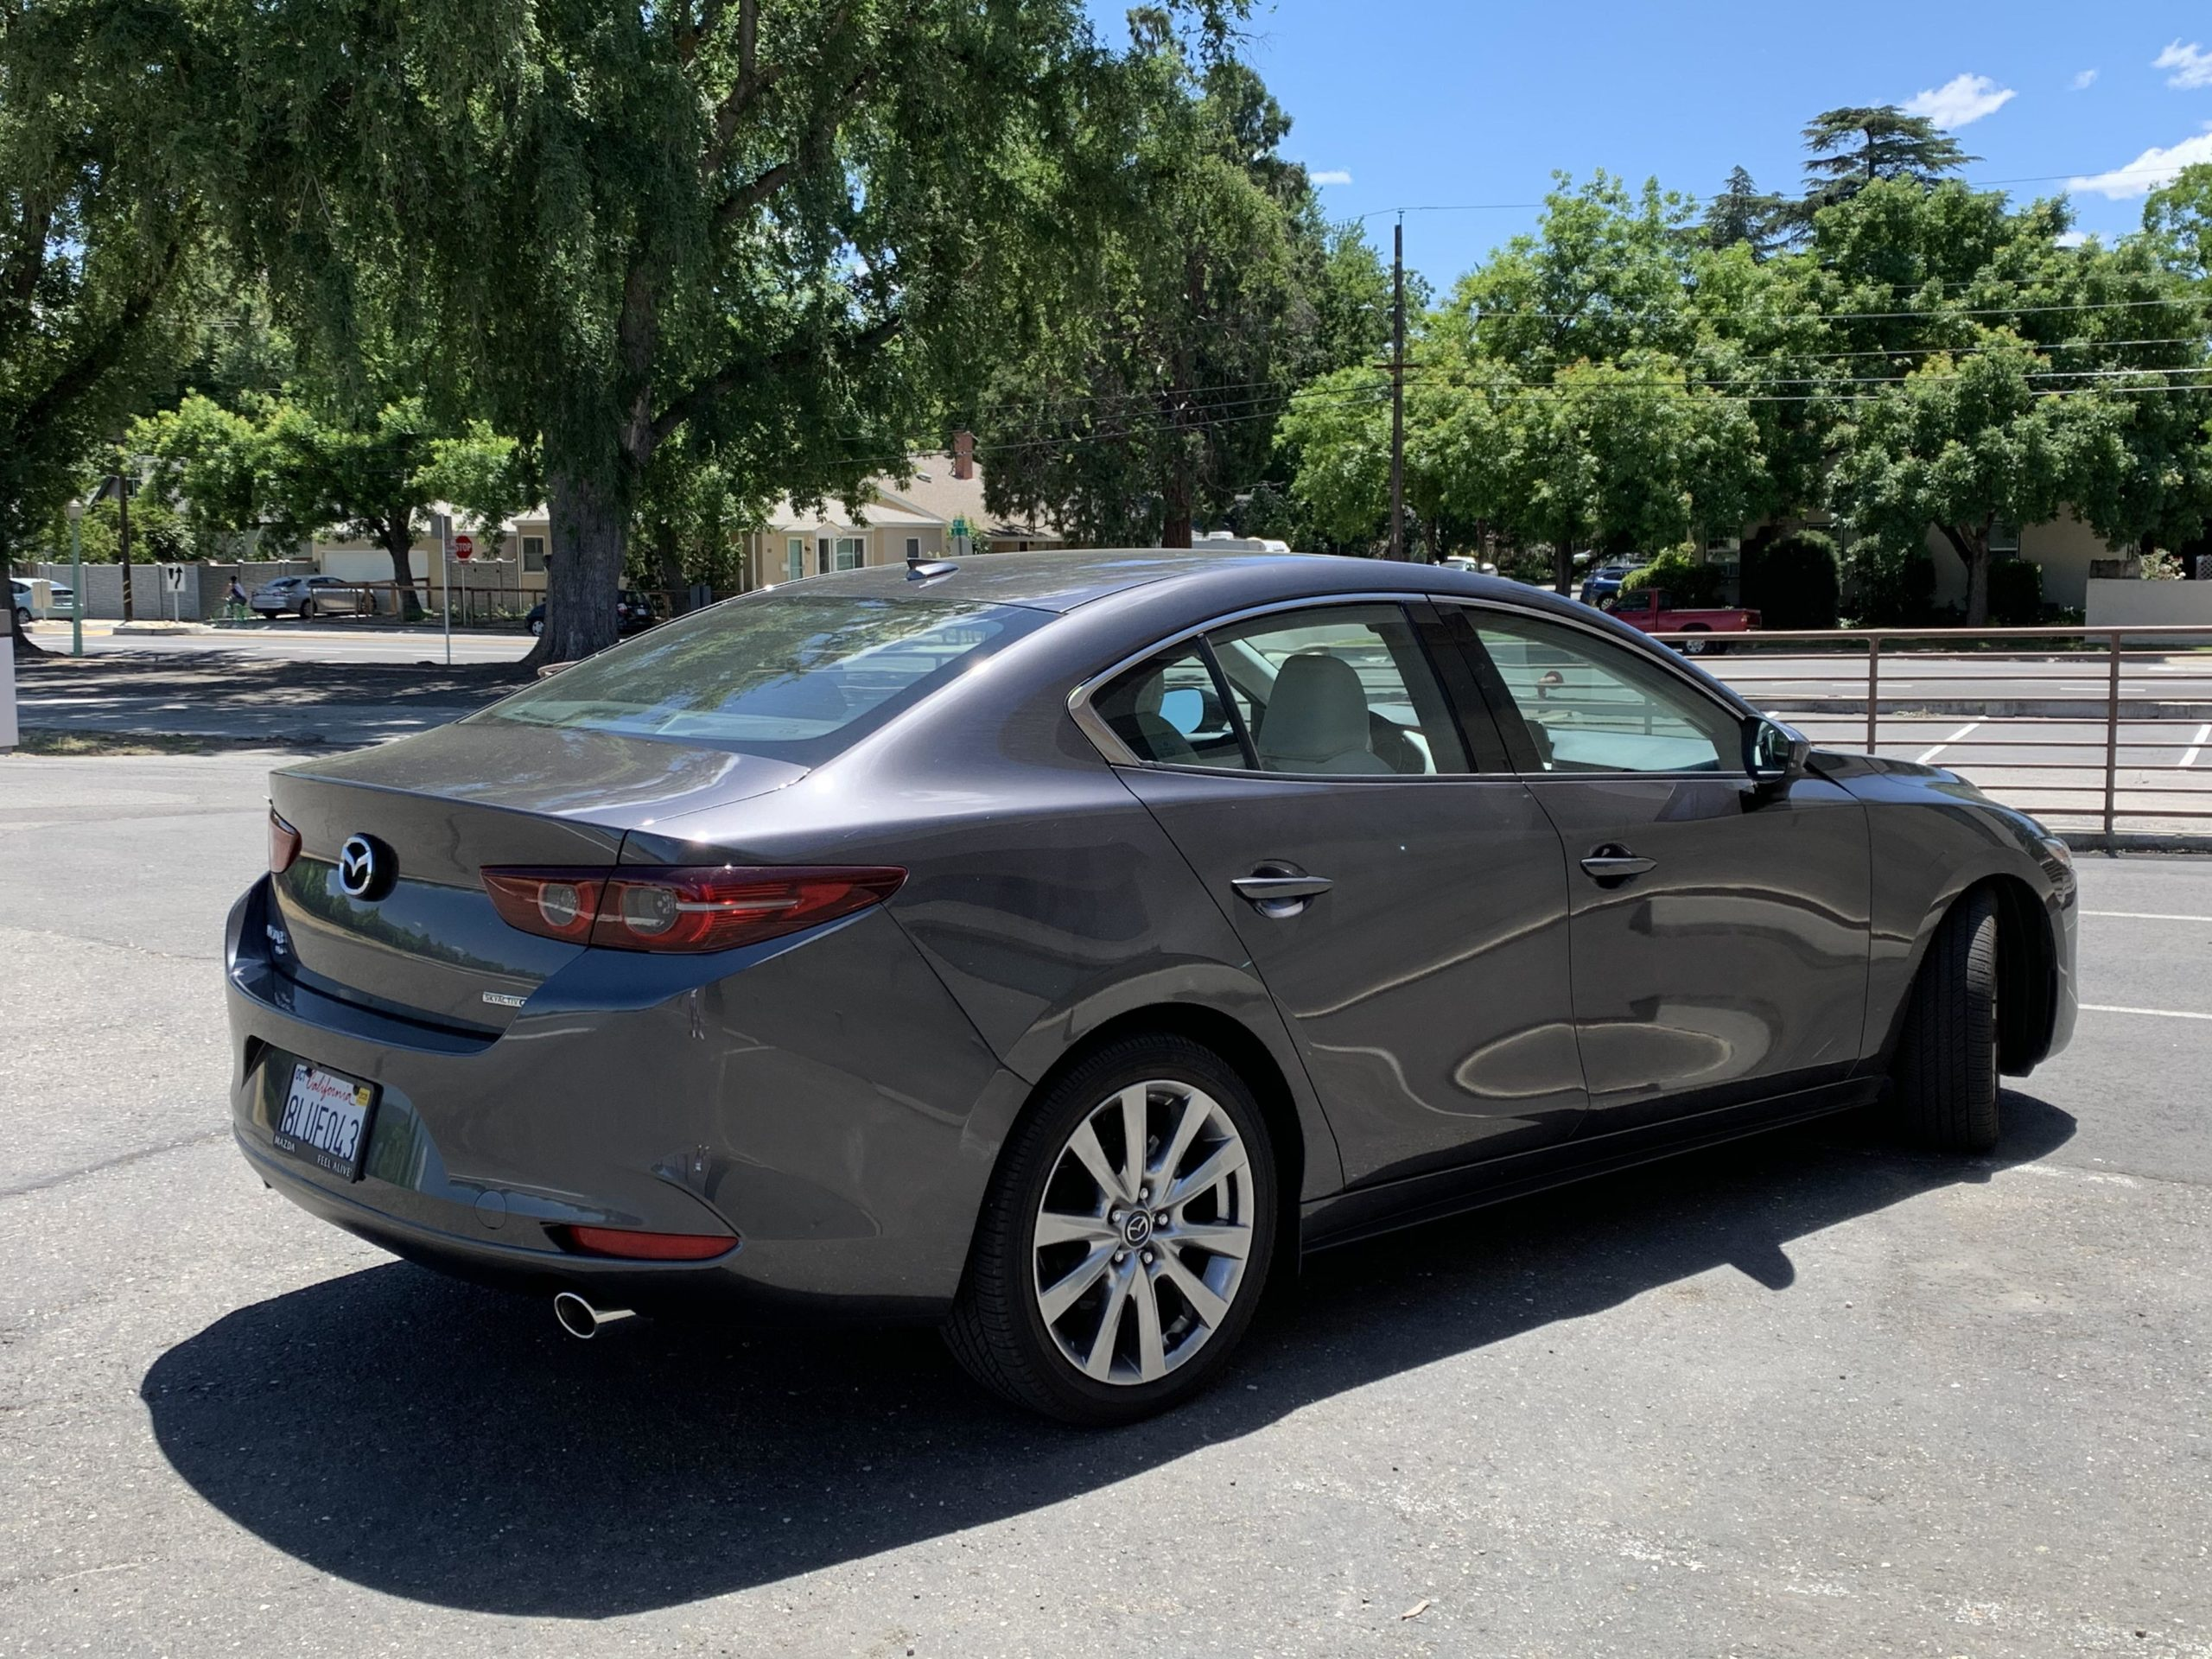 2020 Mazda 3: Handsome, understated; why low sales? 1